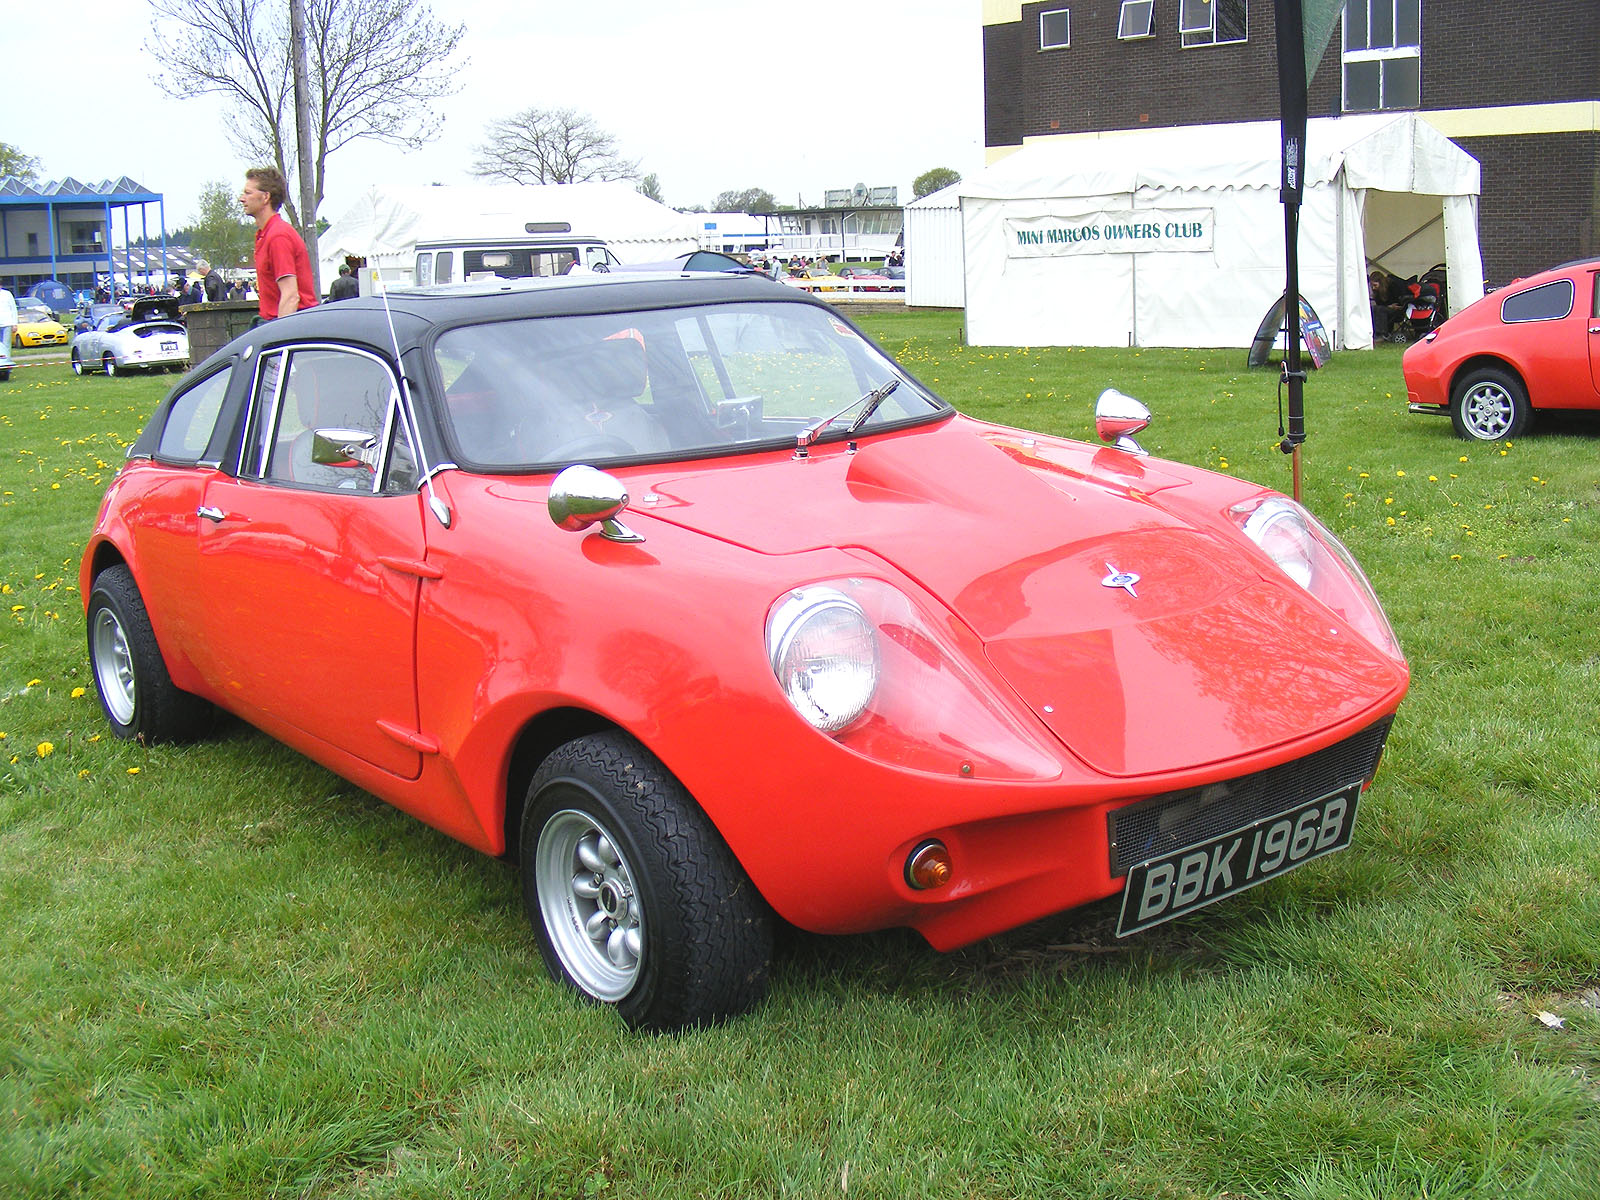 Image View - Mini Marcos with